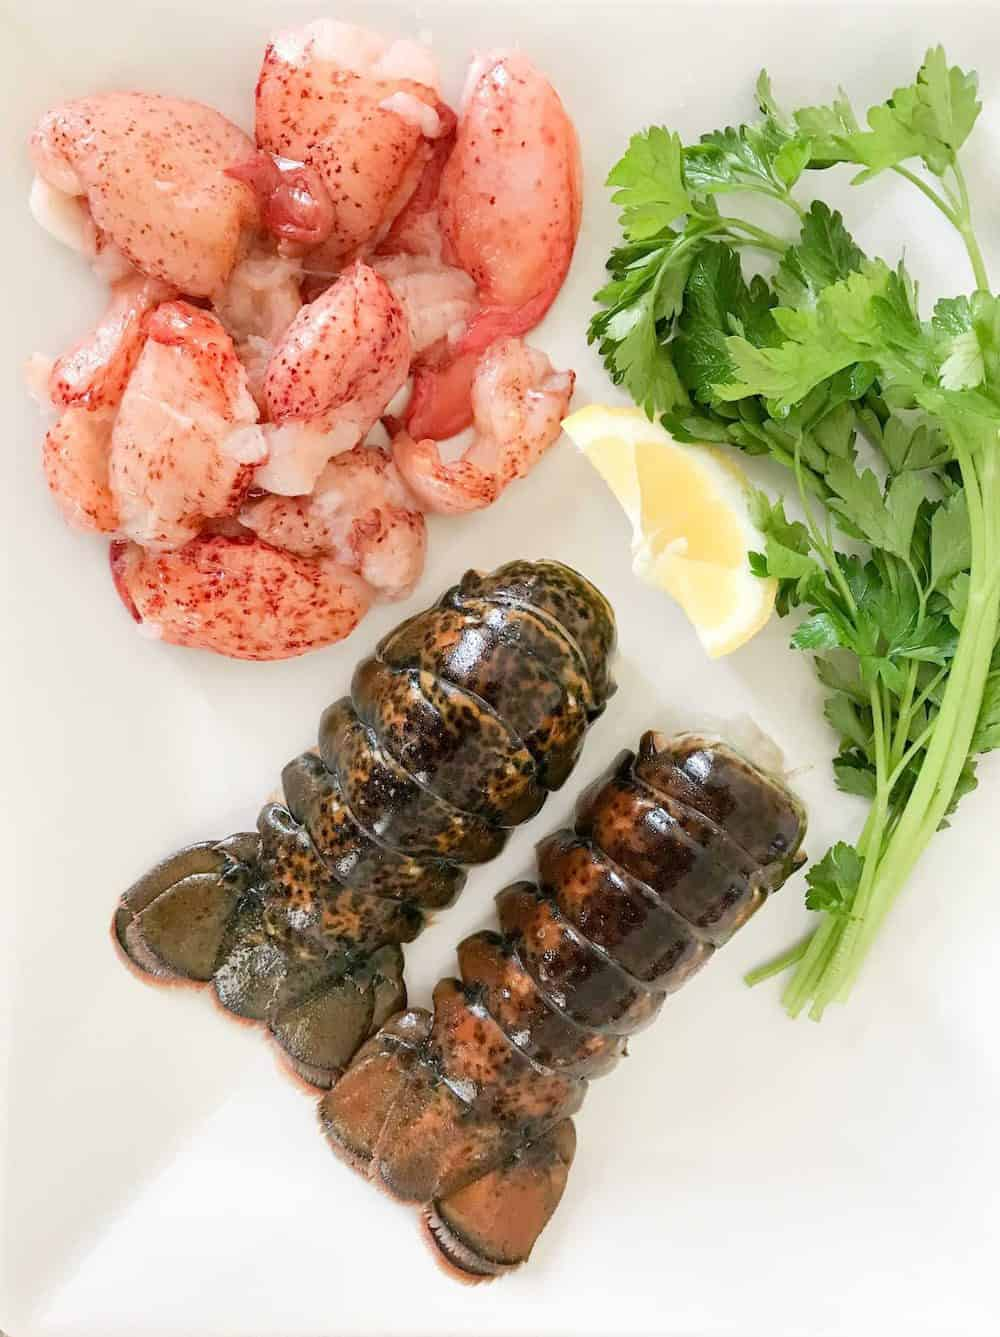 Lobster tails and lobster meat with parsley and lemon on a white plate.